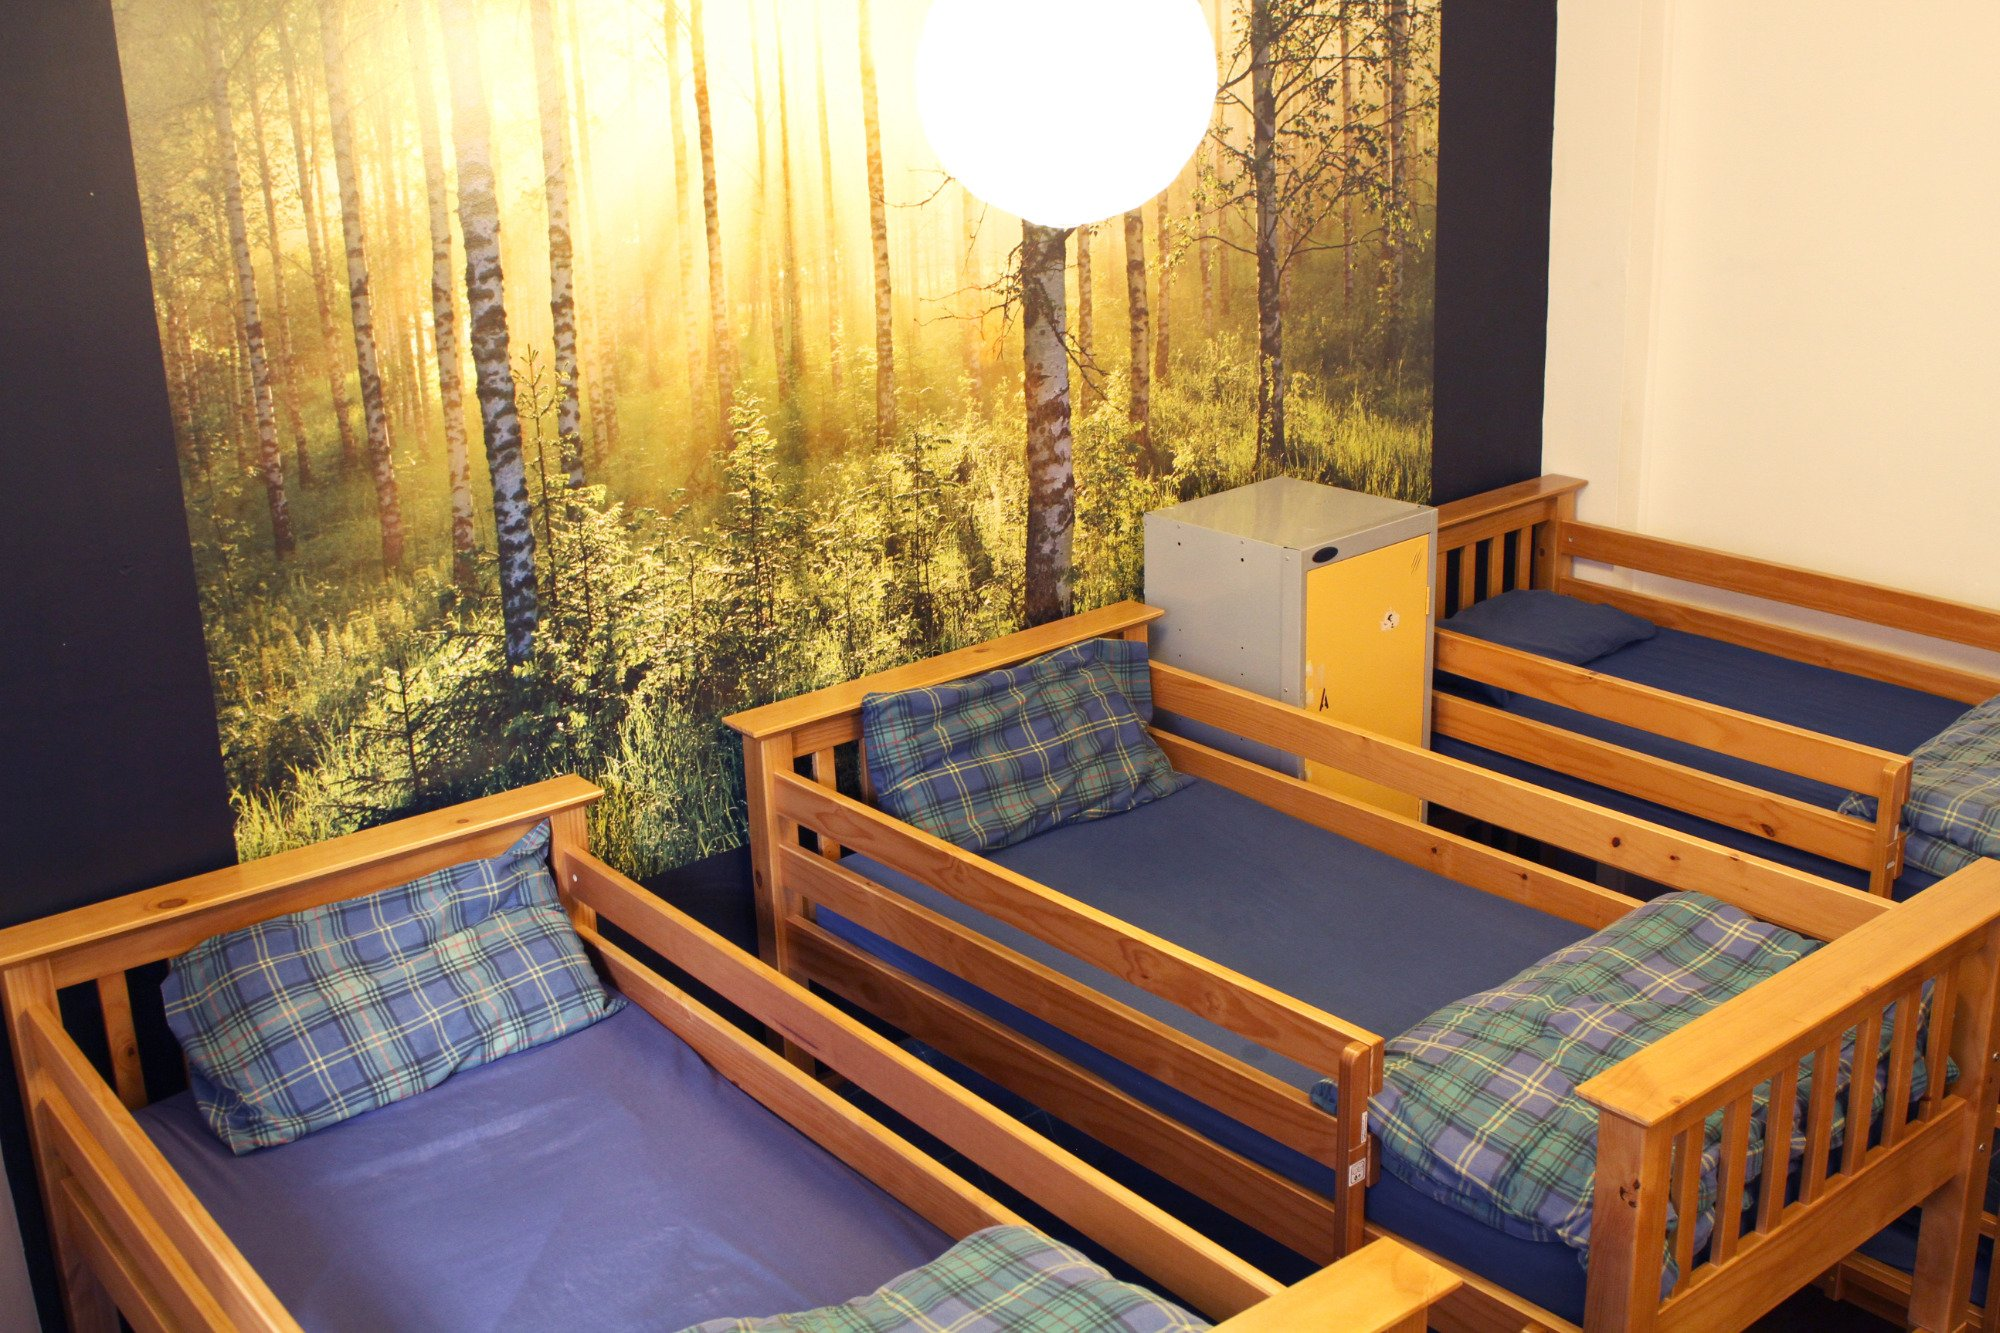 Edinburgh Backpackers Hostel